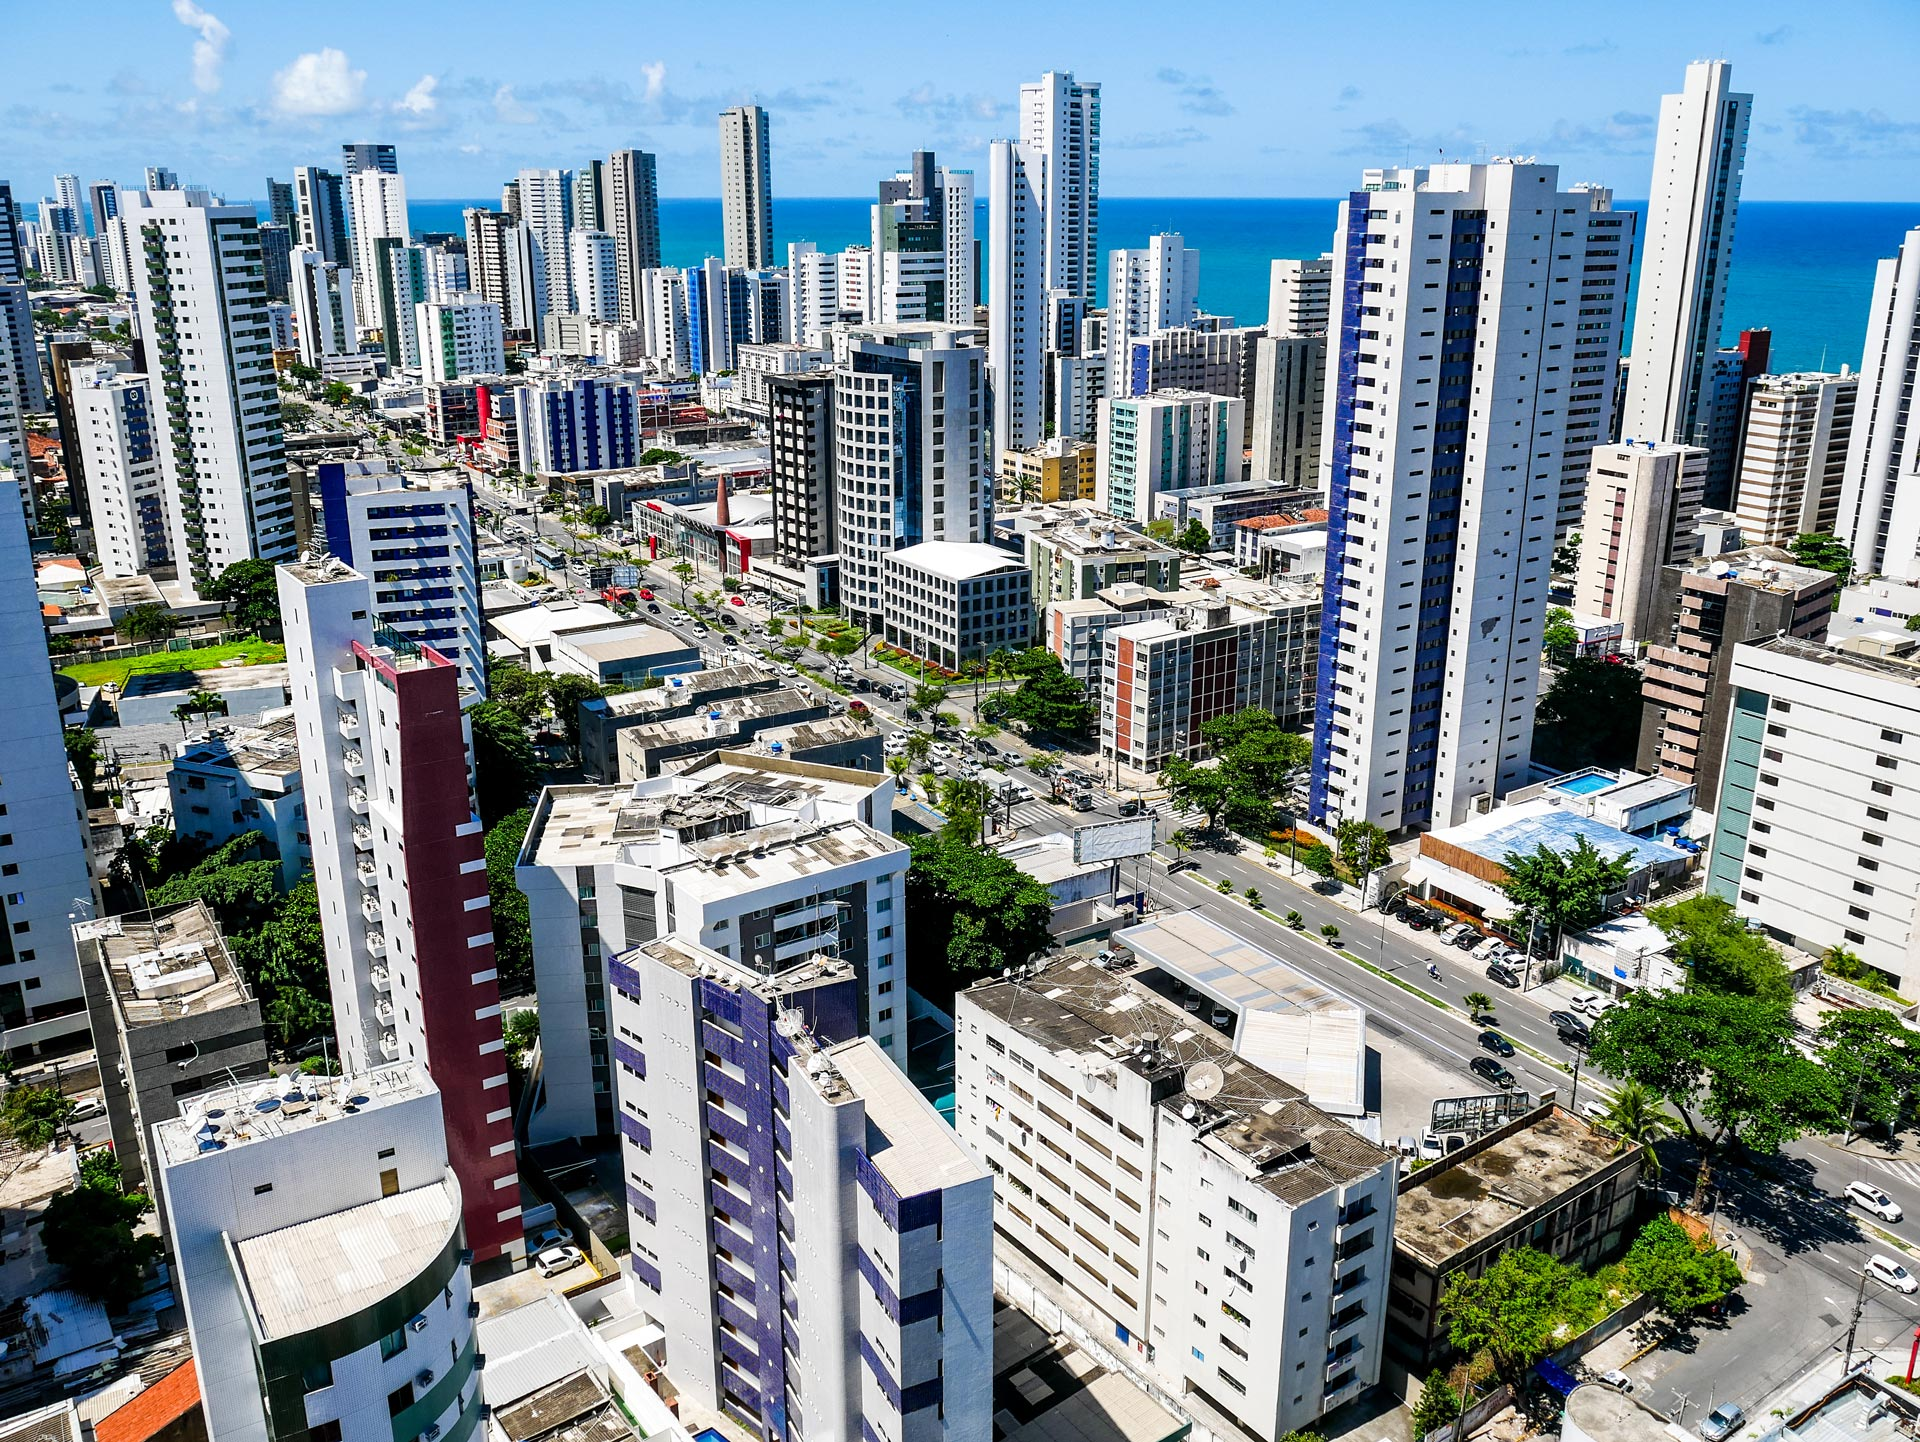 View from rooftop overlooking Boa Viagem and ocean in Recife, Brazil